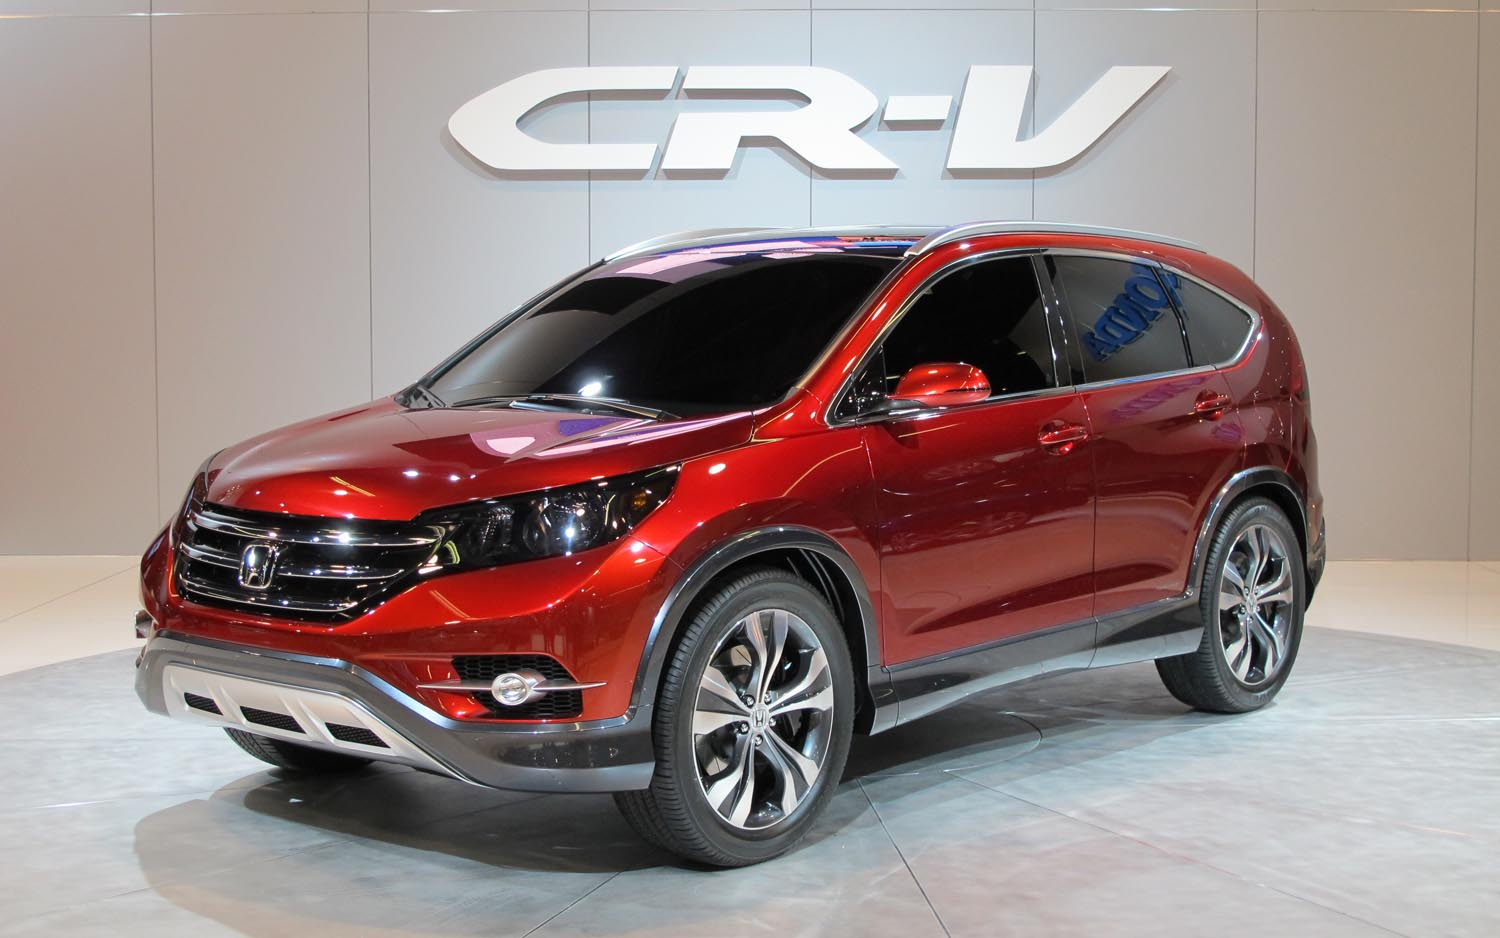 File Honda Cr V Concept At Orange County International Auto Show Jpg Wikimedia Commons